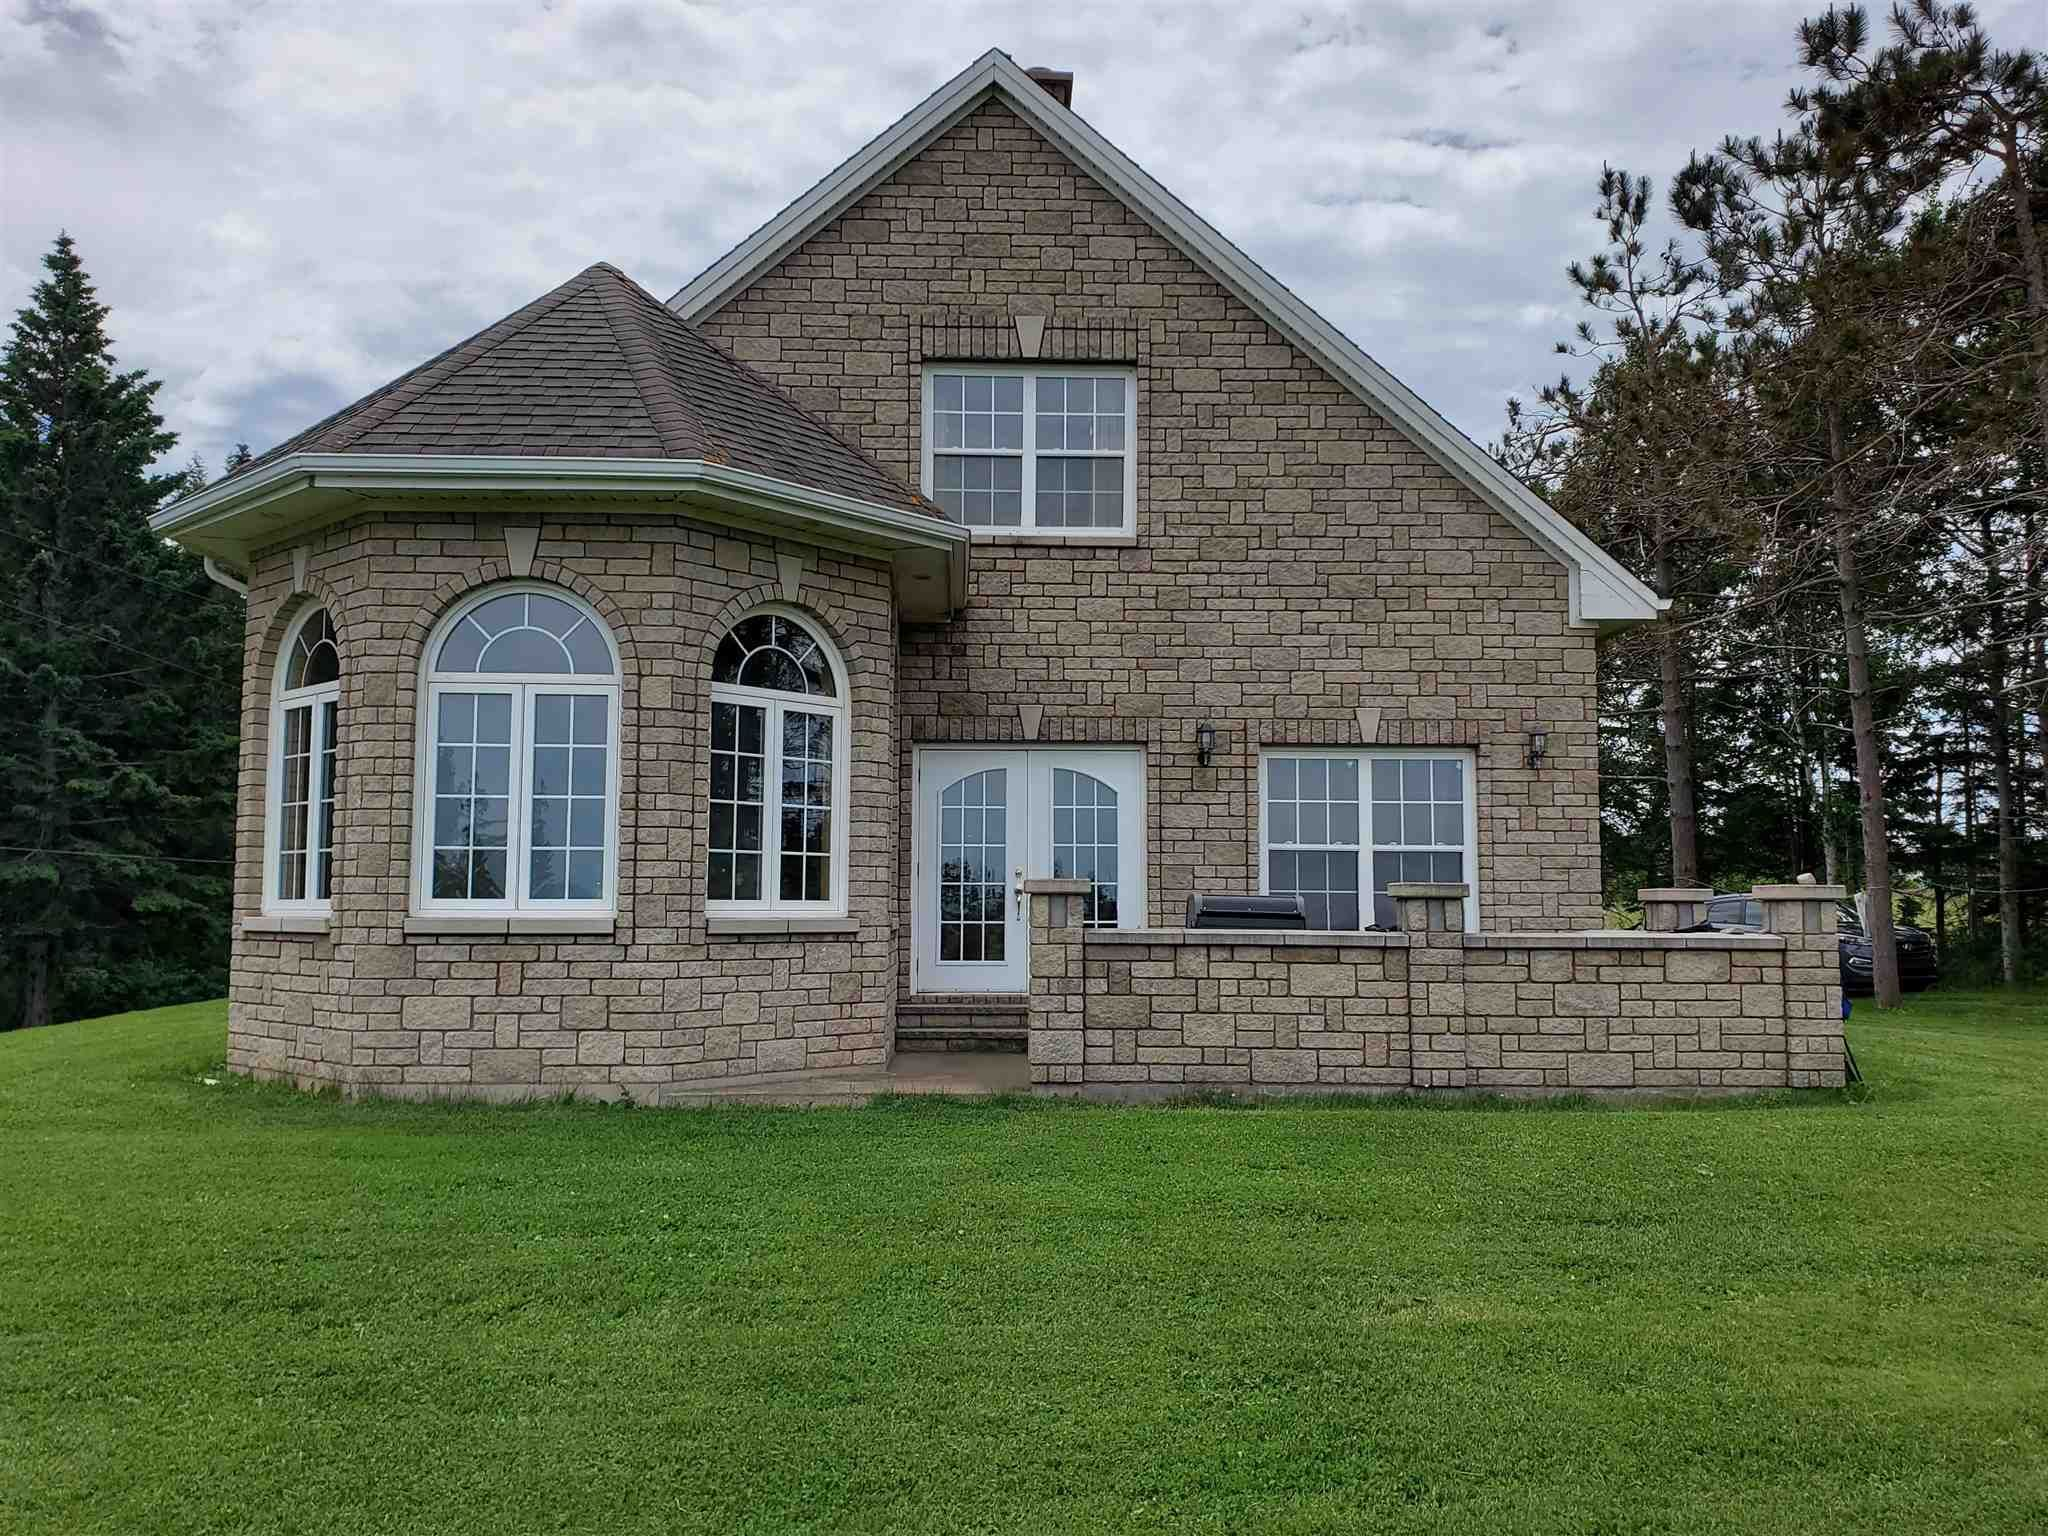 Main Photo: 3865 6 Highway in Seafoam: 108-Rural Pictou County Residential for sale (Northern Region)  : MLS®# 202104421